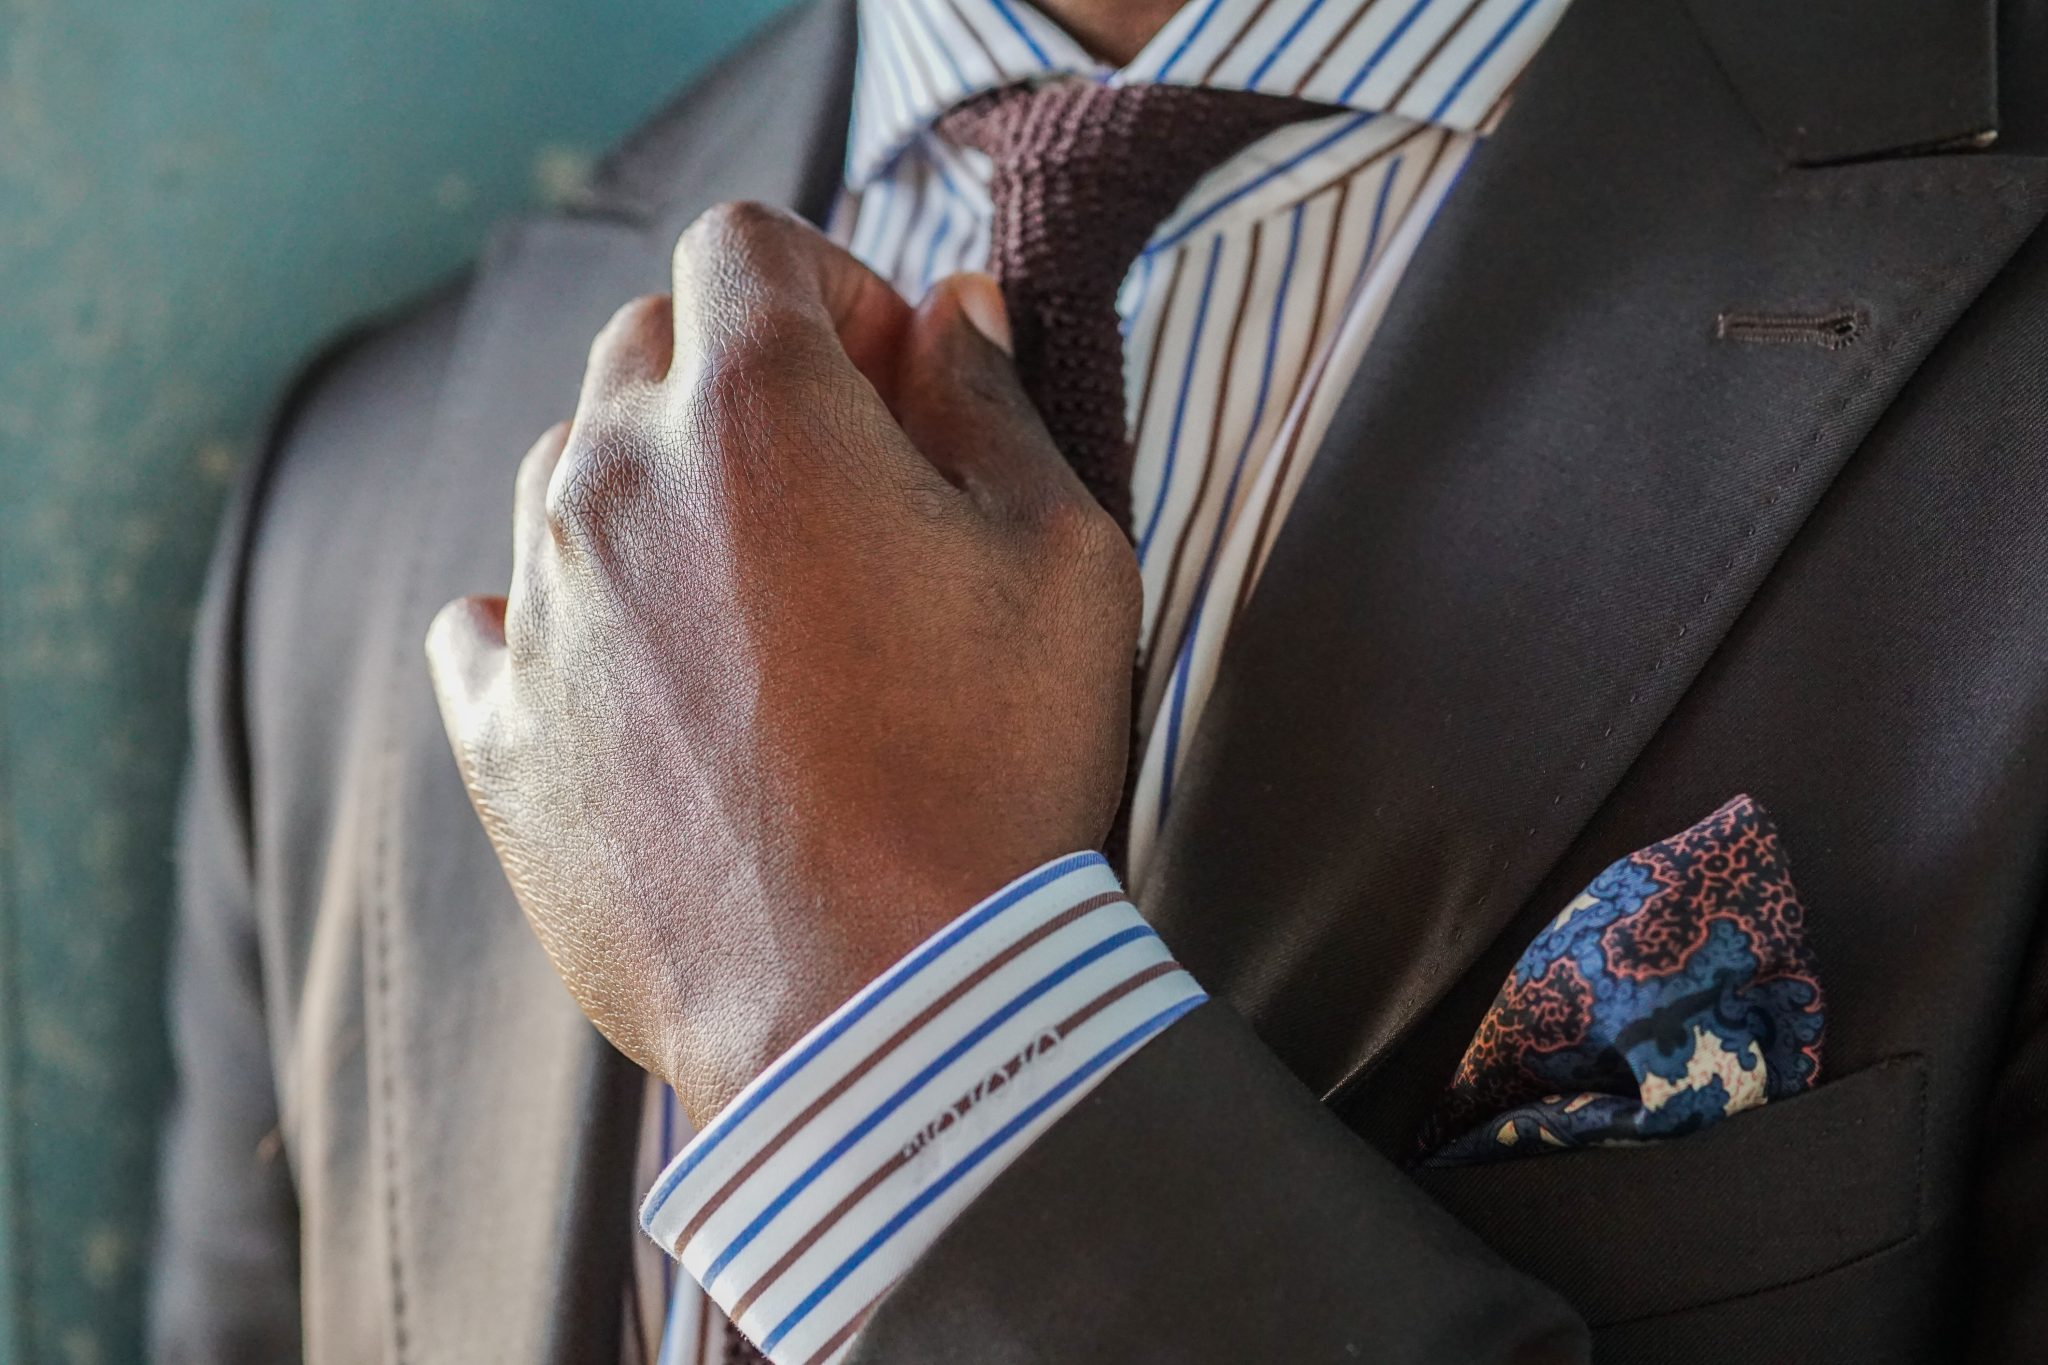 dapper-advisor-black-man-wearing-brown-suit-itailor-custom-shirt-silk-knit-tie-brown-tassel-loafers-1